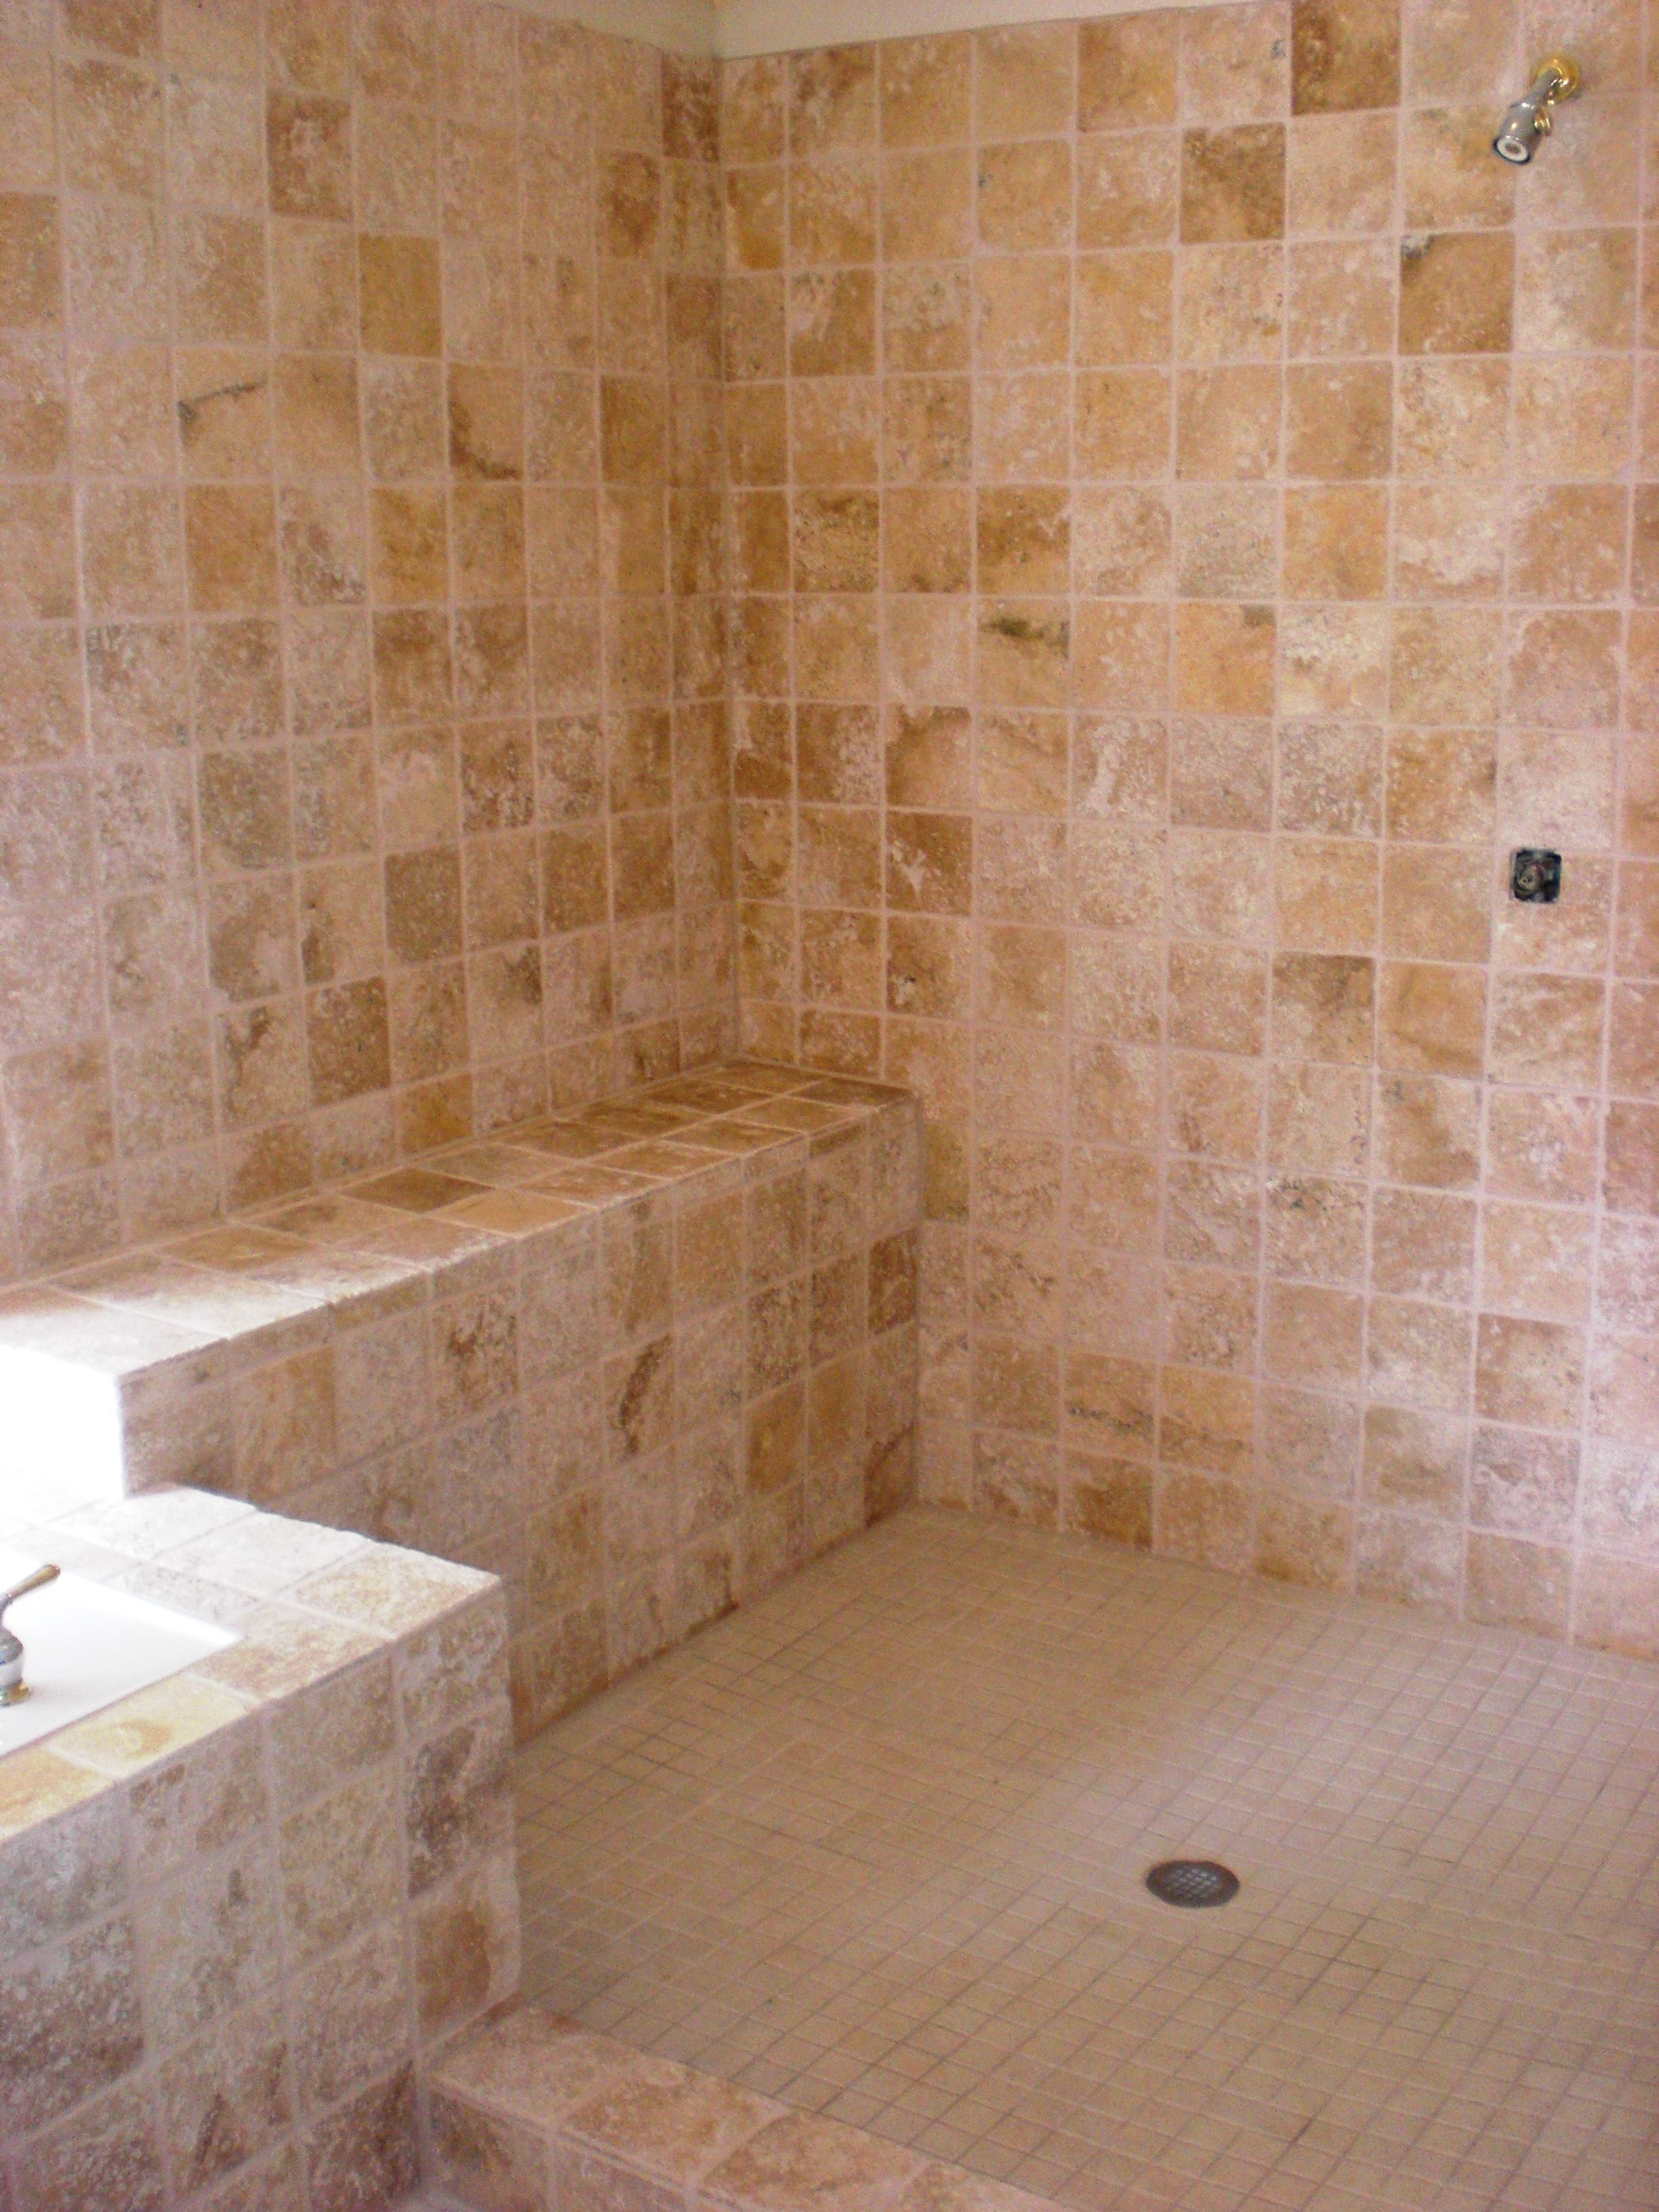 How to Install Bathroom Floor Tile Bathroom tile designs